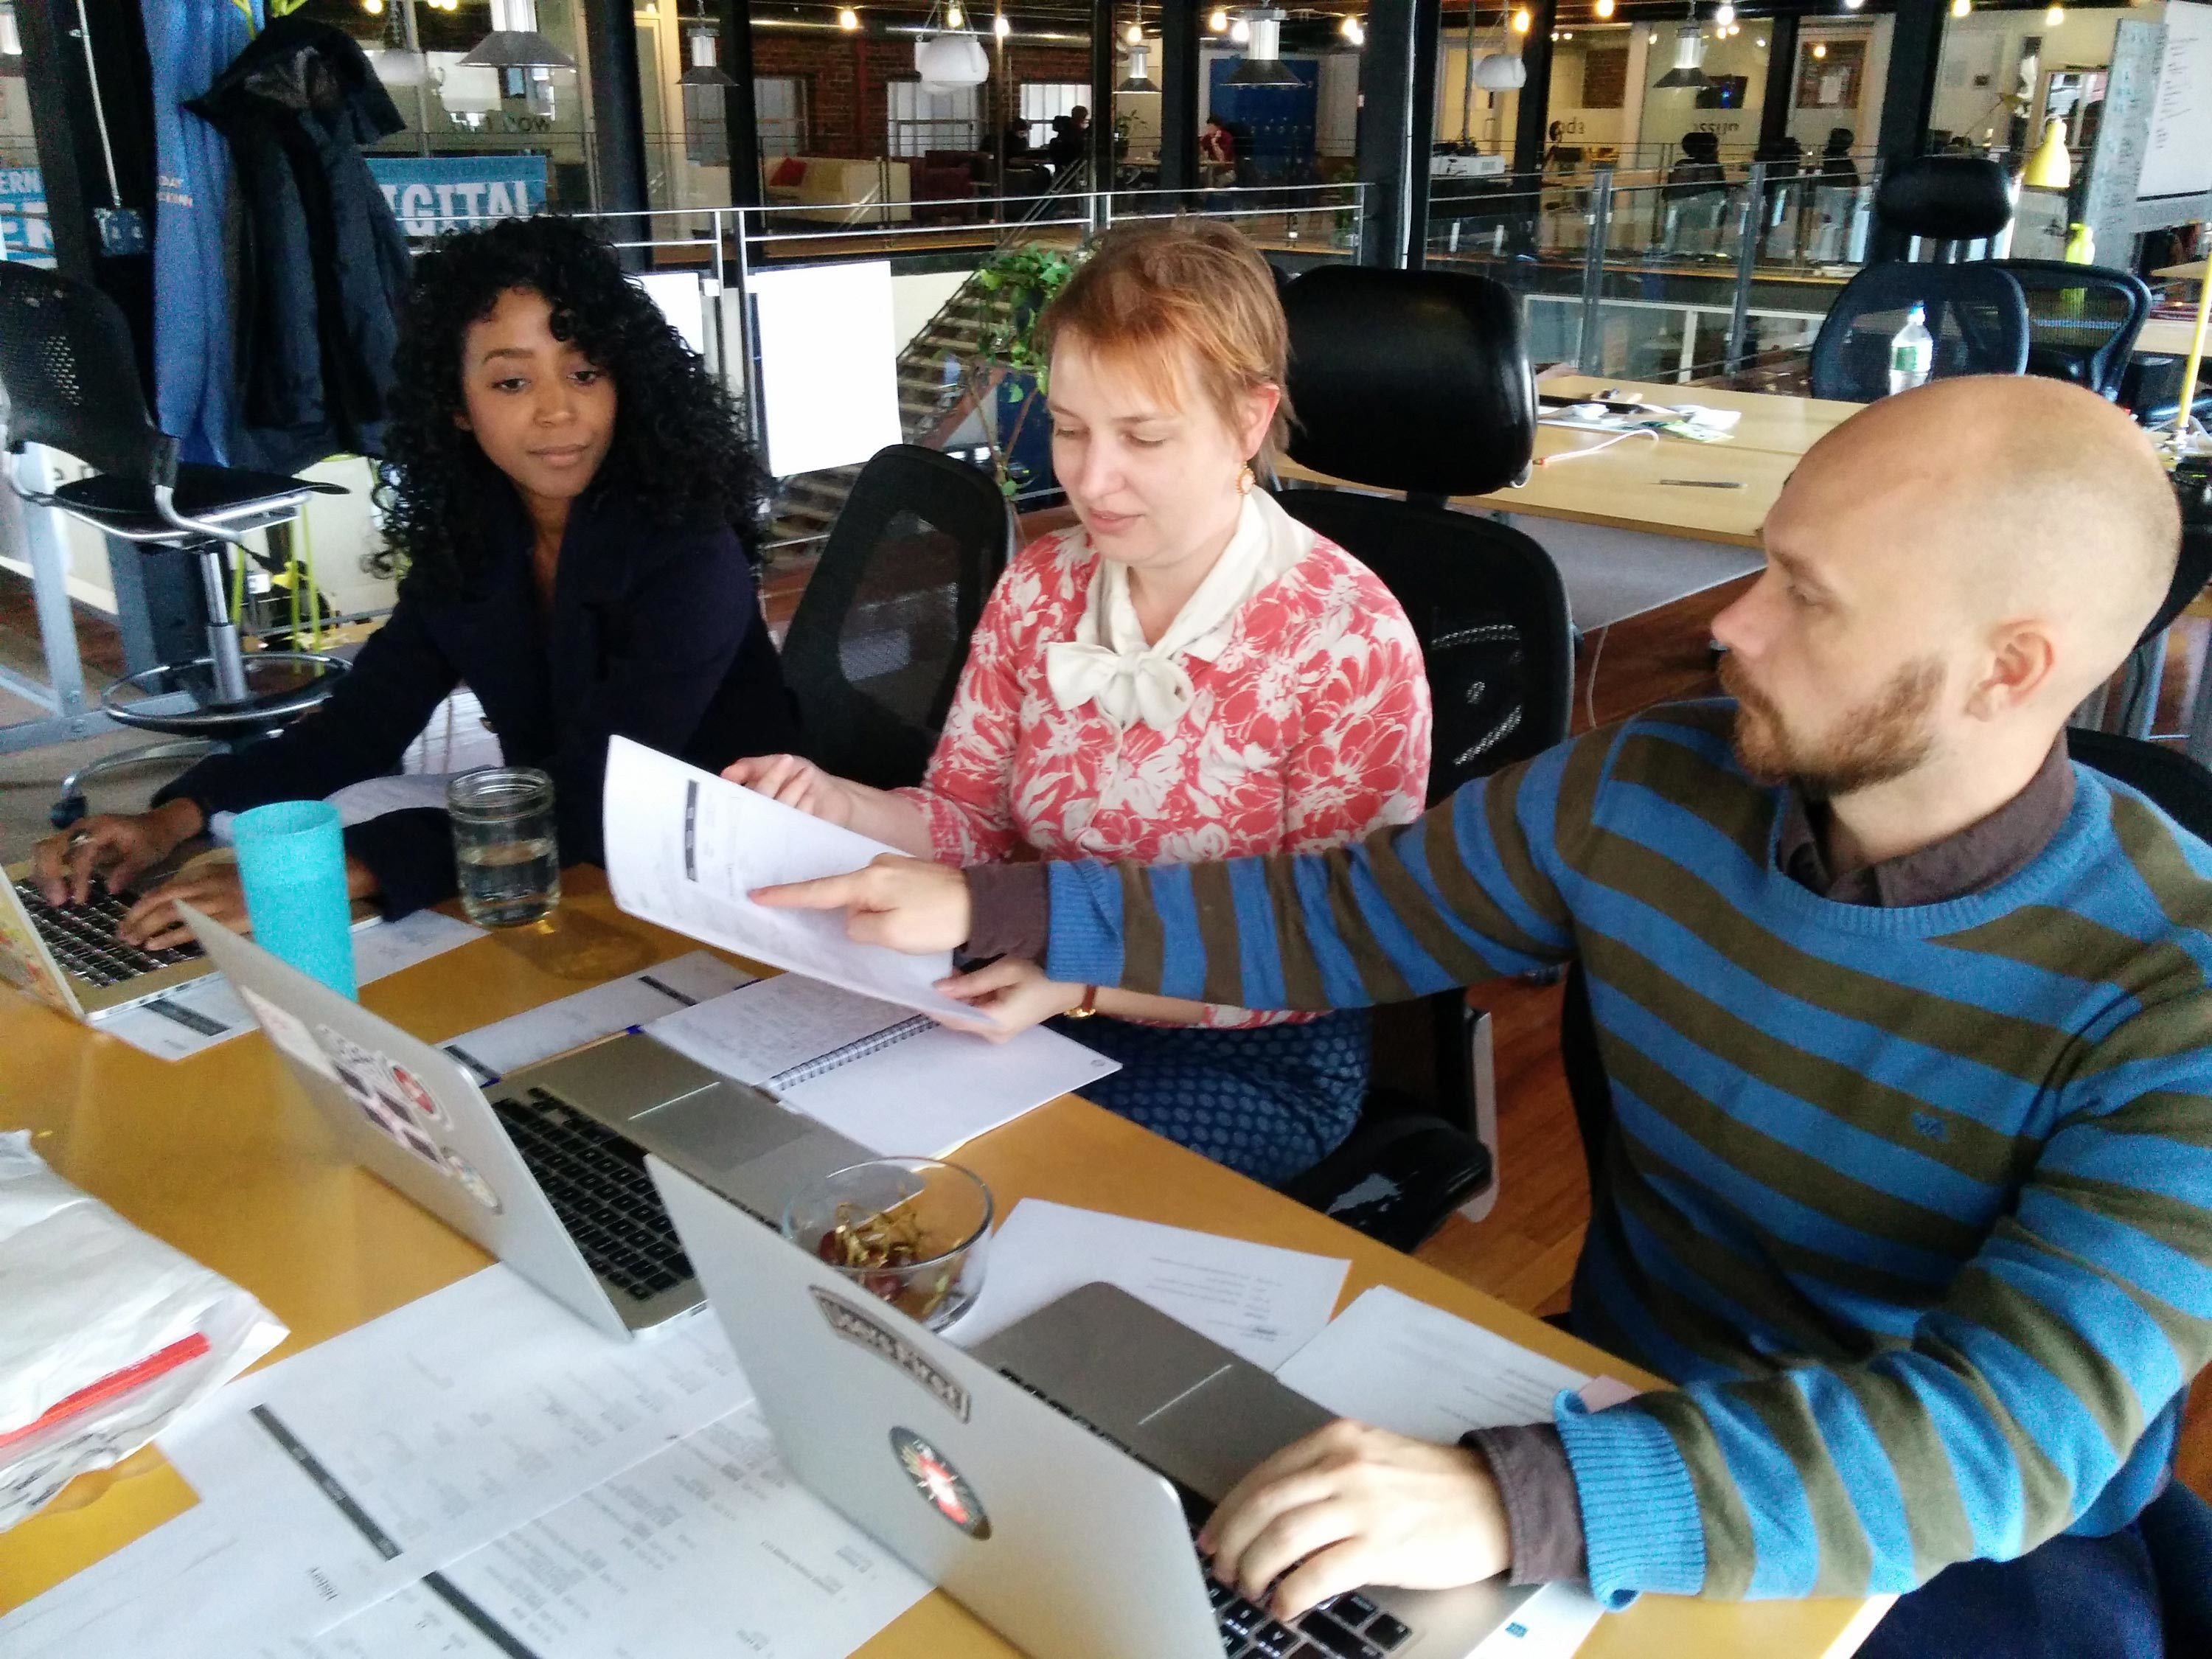 <p>The team discusses how to integrate feedback on ideas from interviews with legal aid groups and District Attorneys.</p>